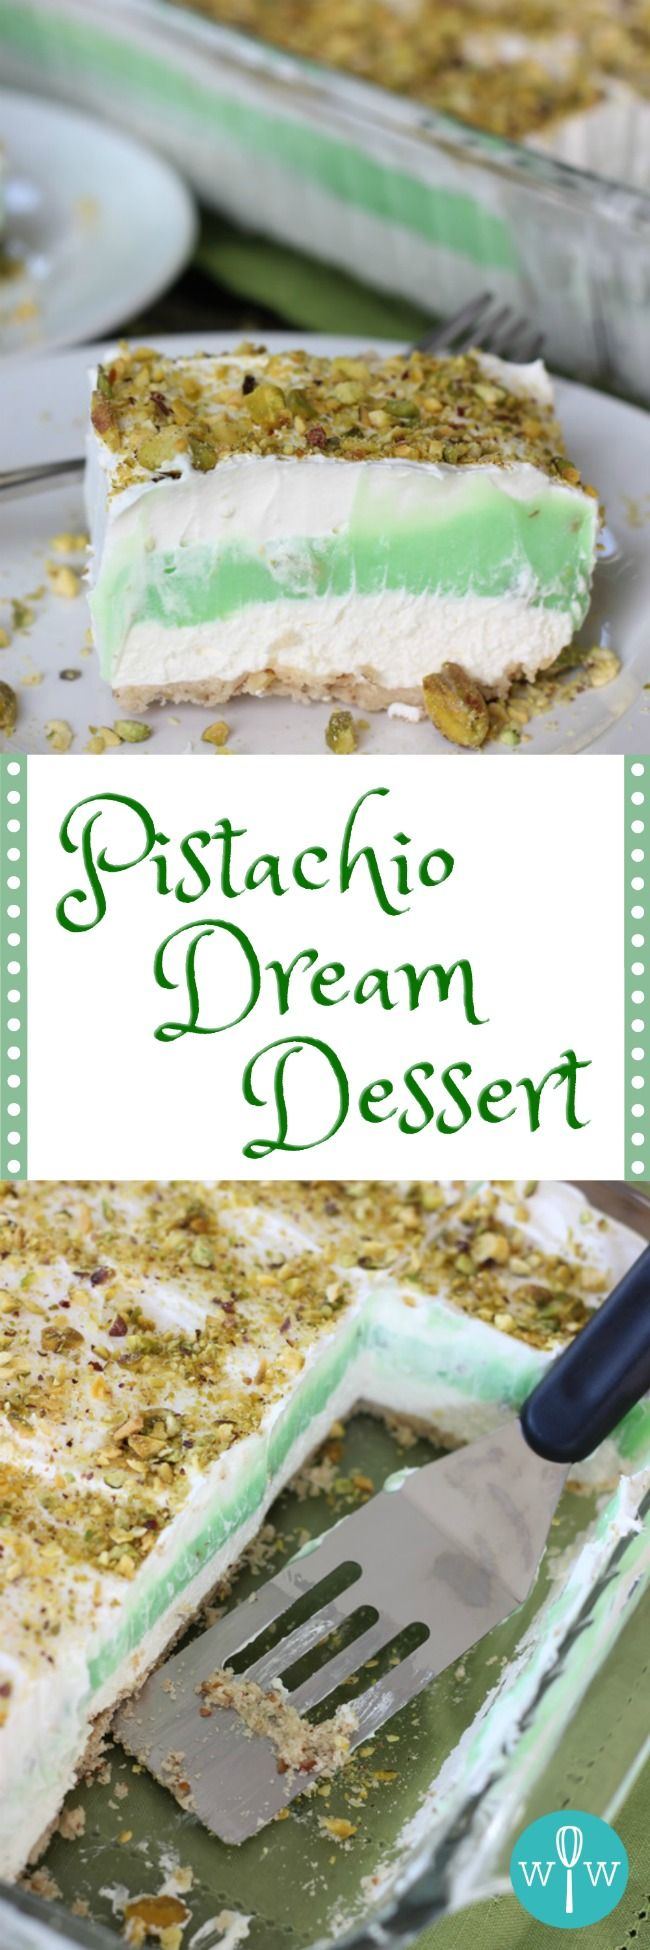 Pistachio Dream Dessert - A wonderful, light anytime dessert! A delightful pecan crust covered in layers of whipped topping, creamy pistachio pudding, and crunchy chopped pistachios. | www.worthwhisking.com